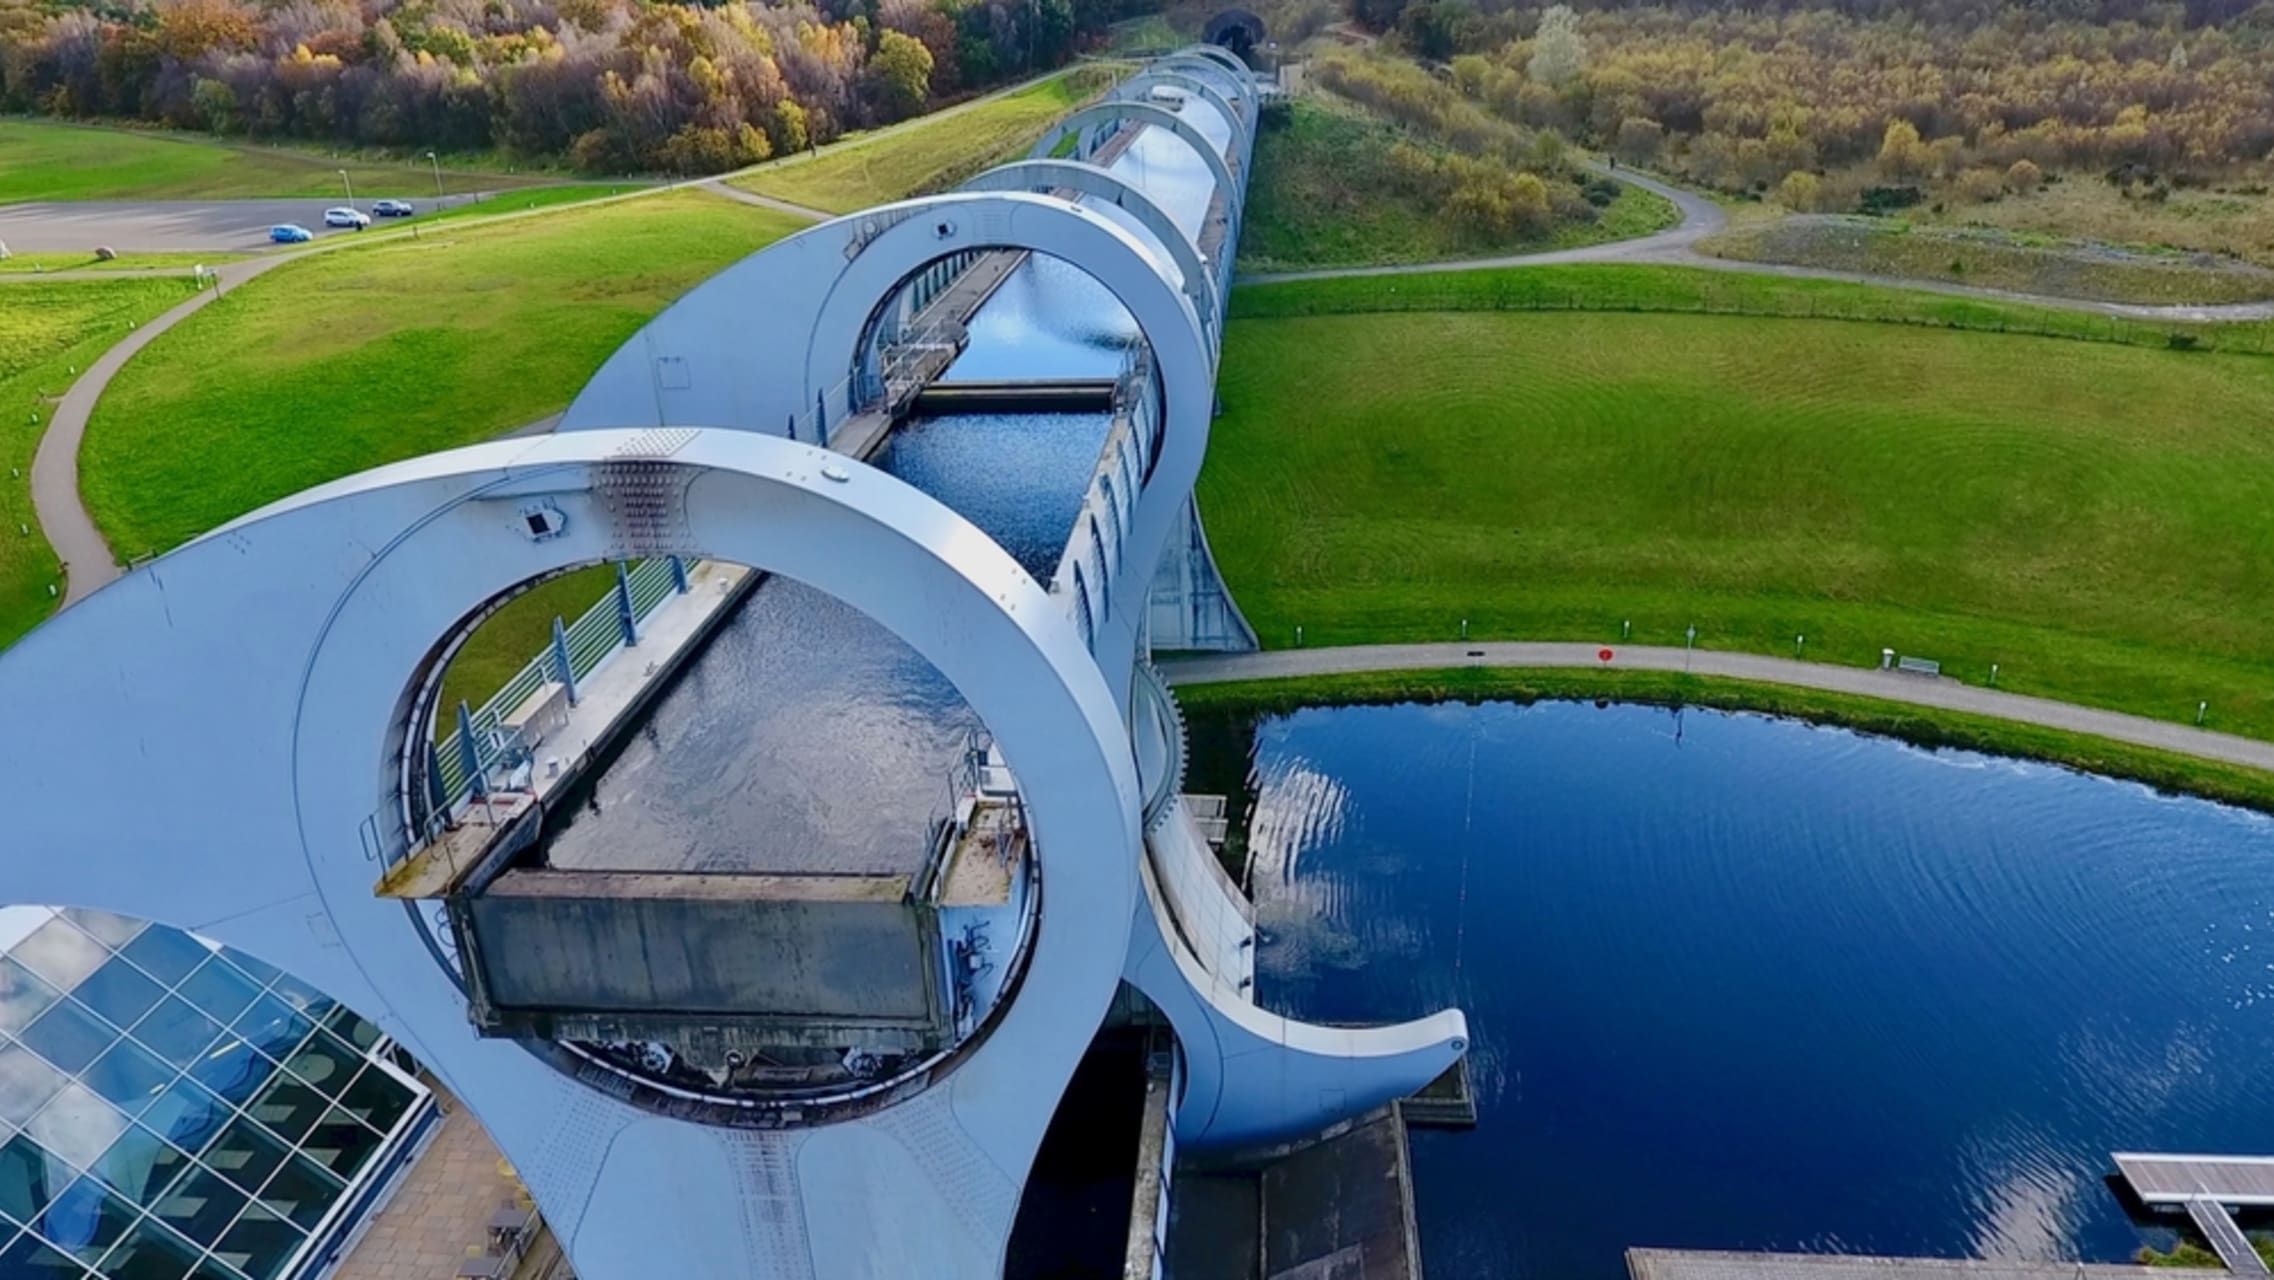 Central Scotland - The Falkirk Wheel - the world's First and Only Rotating Boat Lift